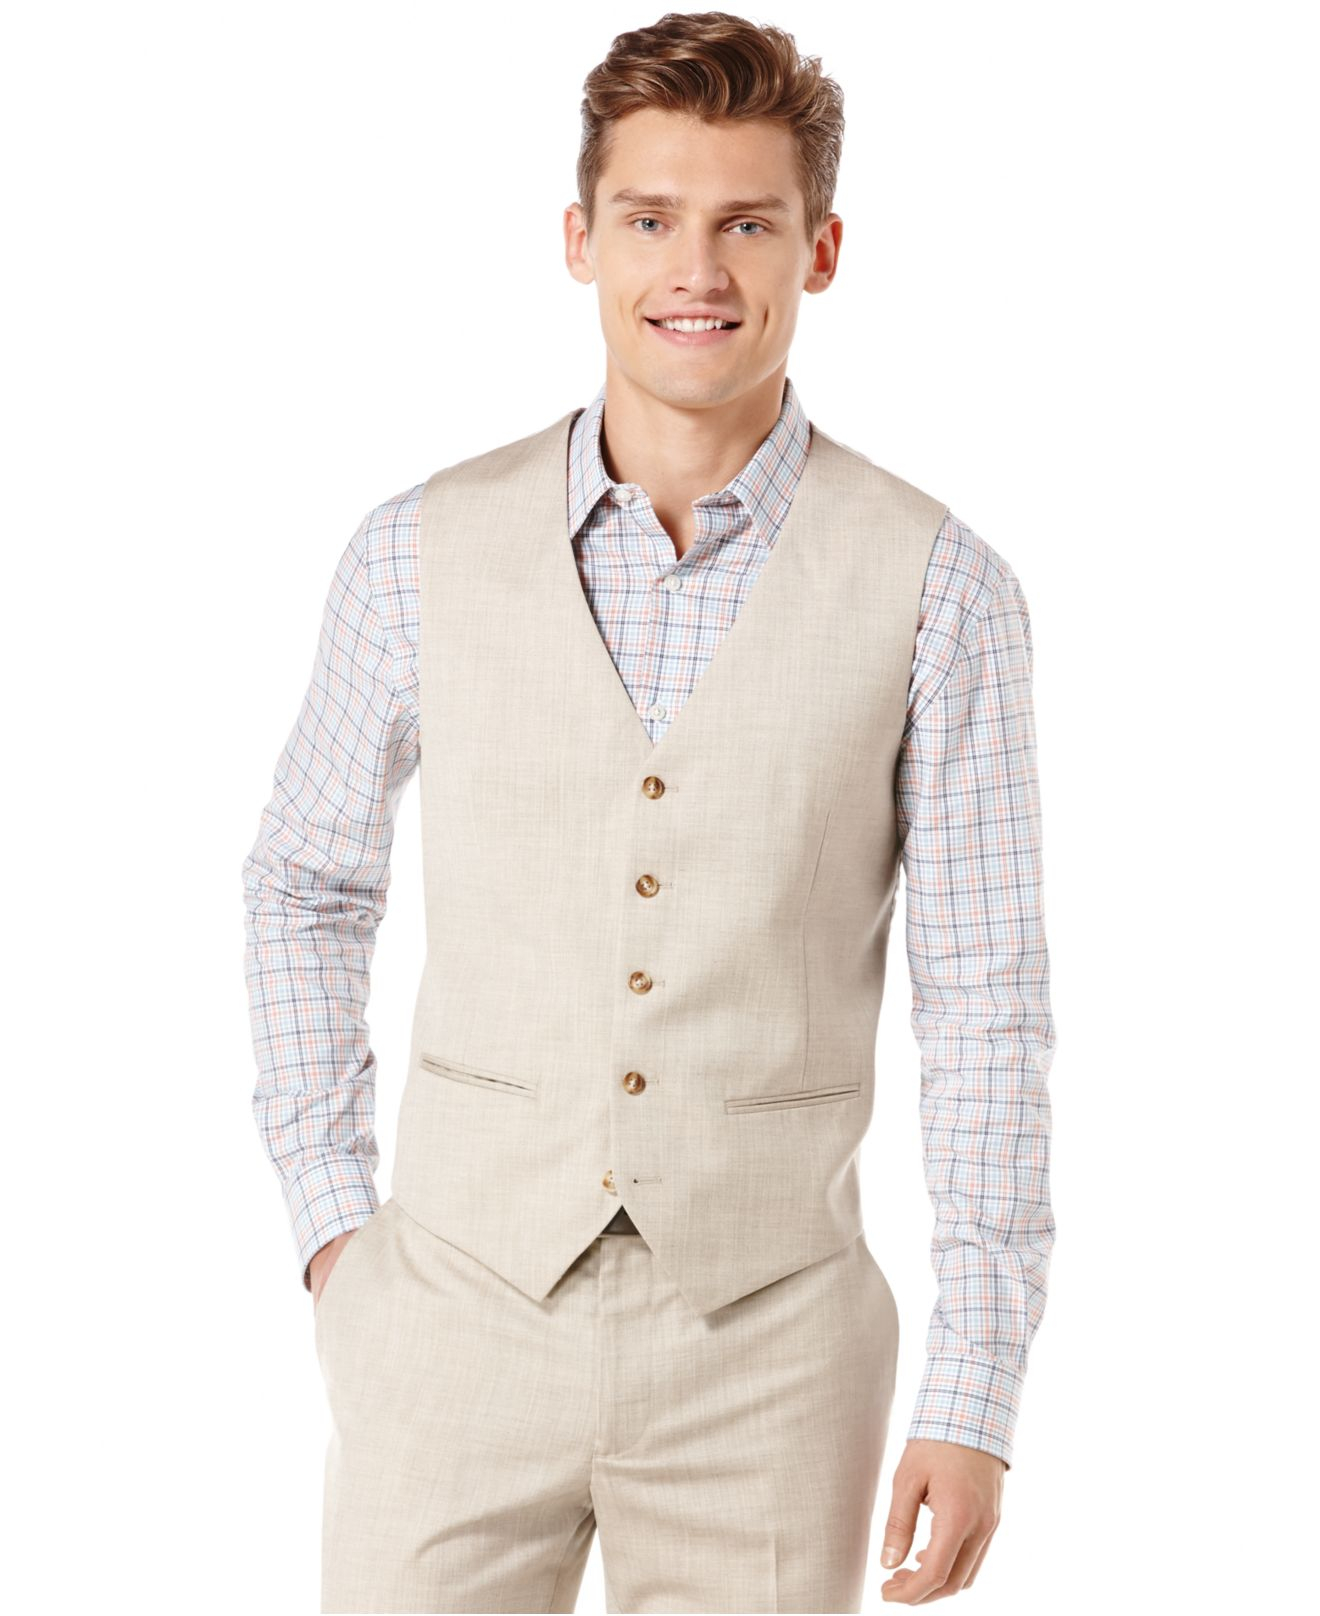 Linen is a great look for warm weather events rather than wearing a suit or tuxedo. Linen can be used for destination weddings, where you can accessorize with your favorite tie, or as is with a white shirt/5(42).